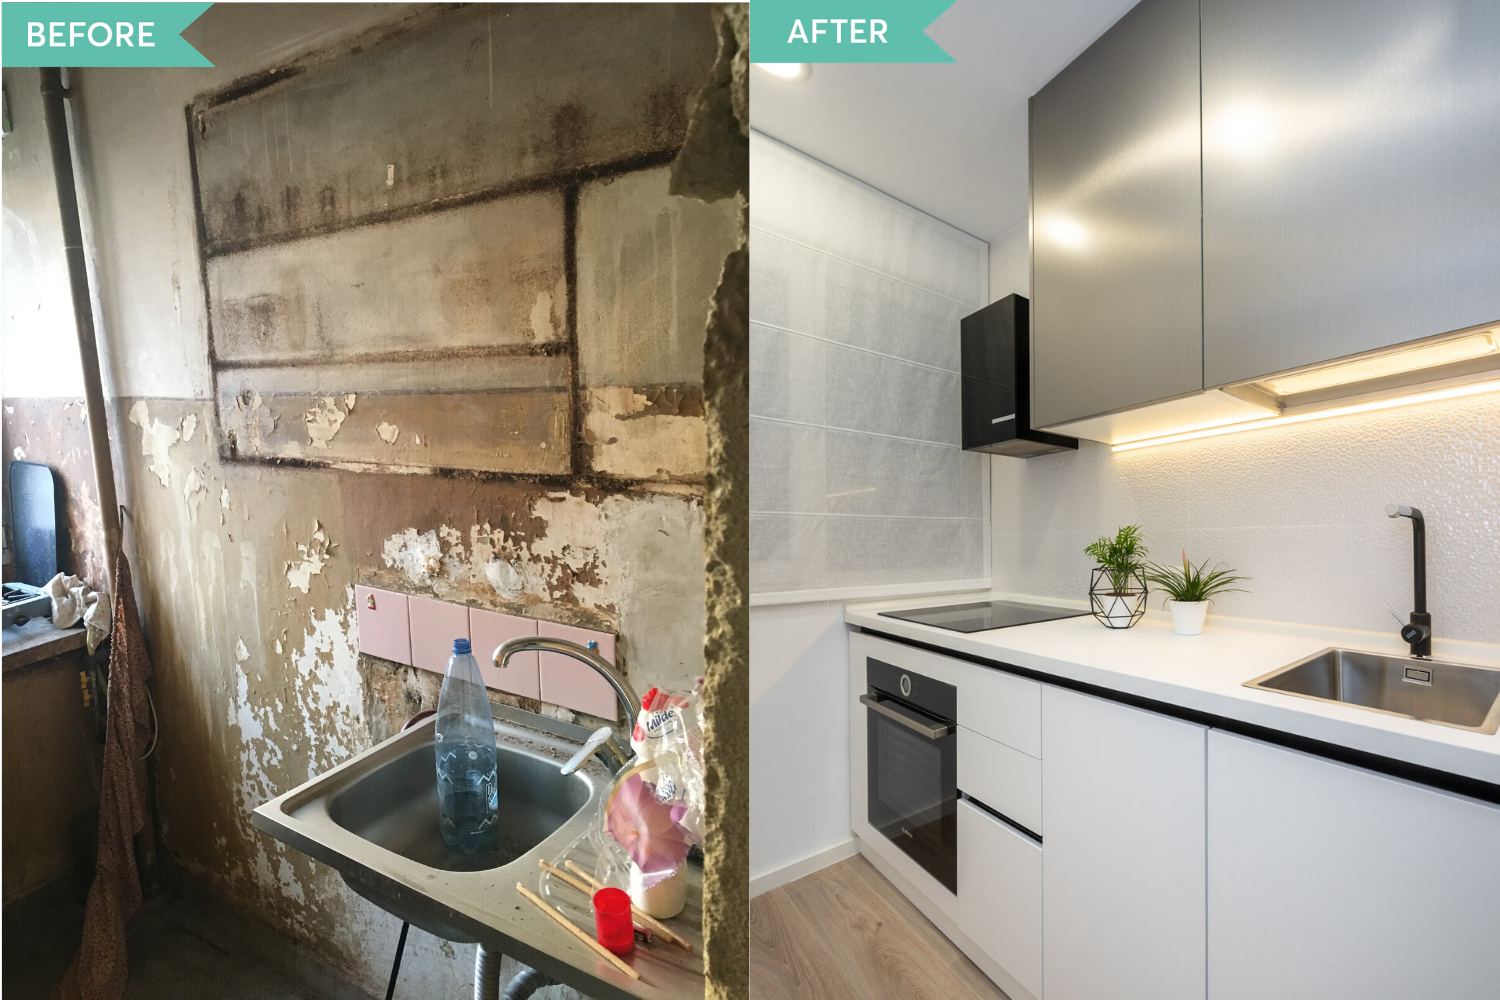 Renovare bucatarie apartament vechi - before and after - arh. Cristiana Zgripcea